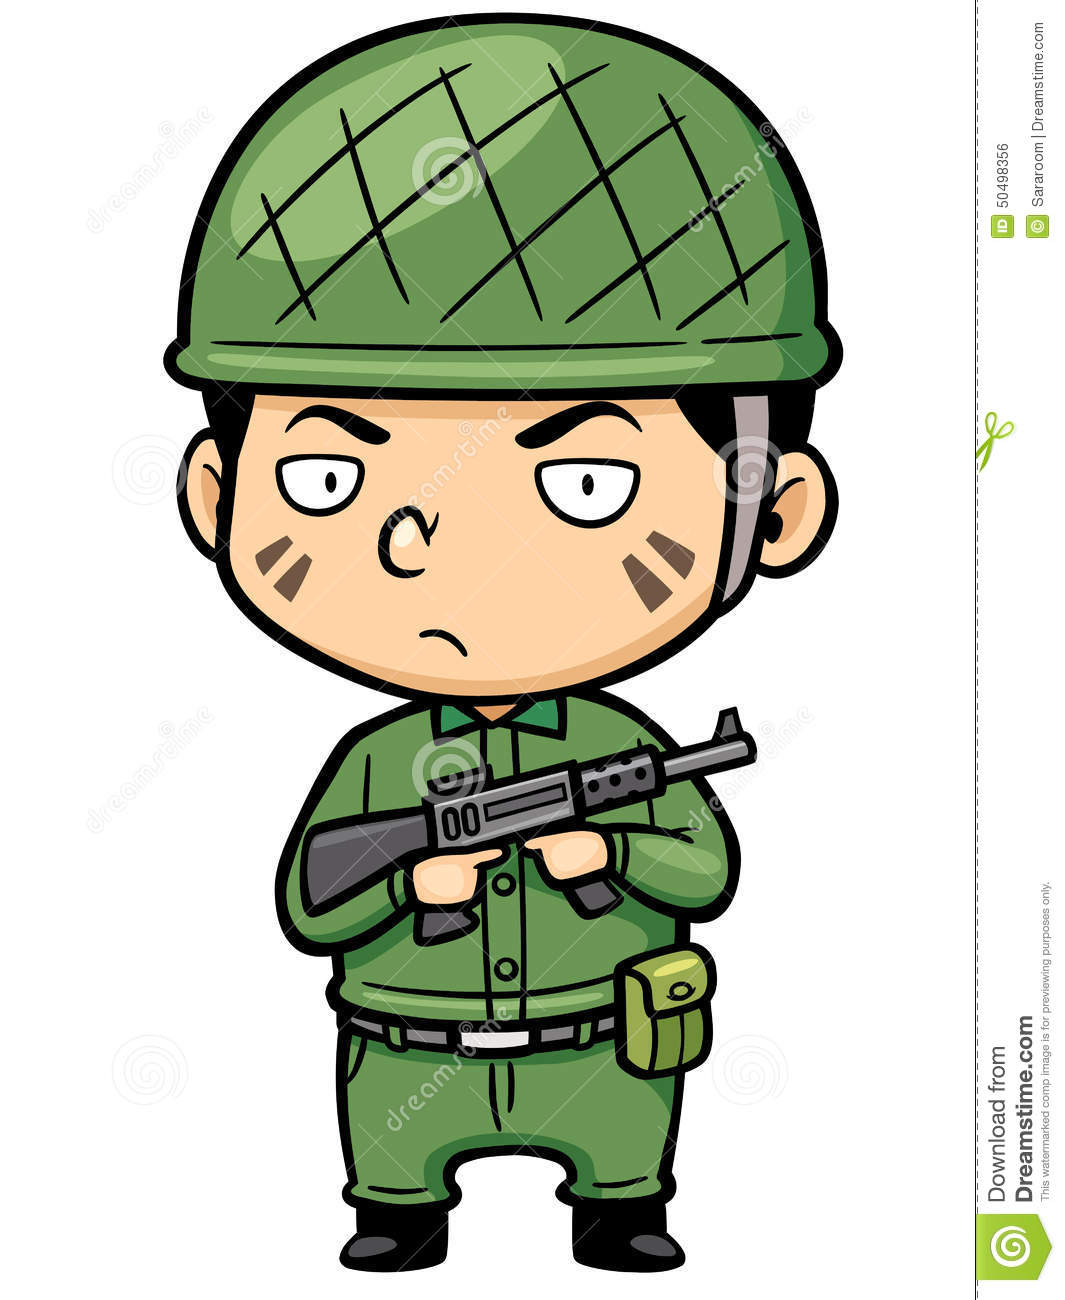 Soldier stock vector. Image of illustration, little, armed ...